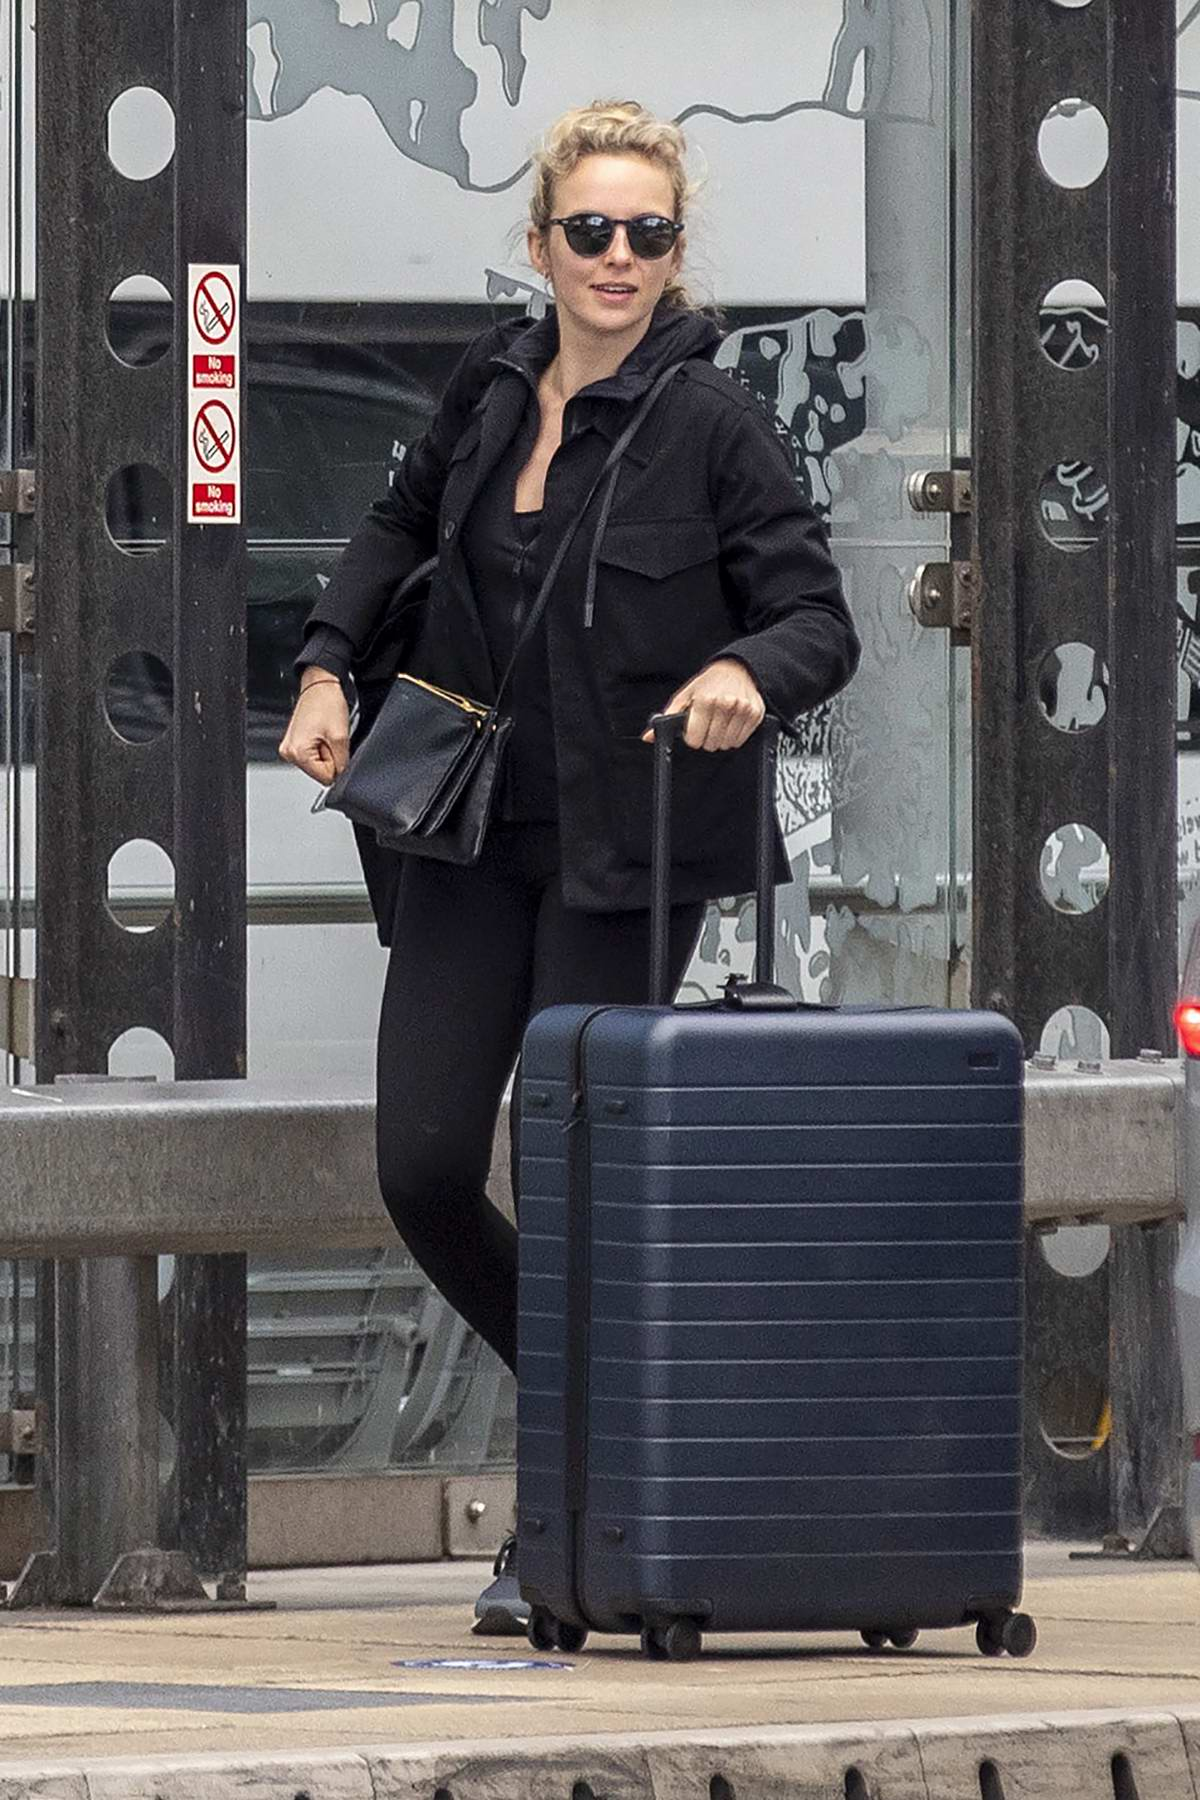 Jodie Comer dons all-black as she arrives to catch a train from Liverpool Lime street station in Liverpool, UK